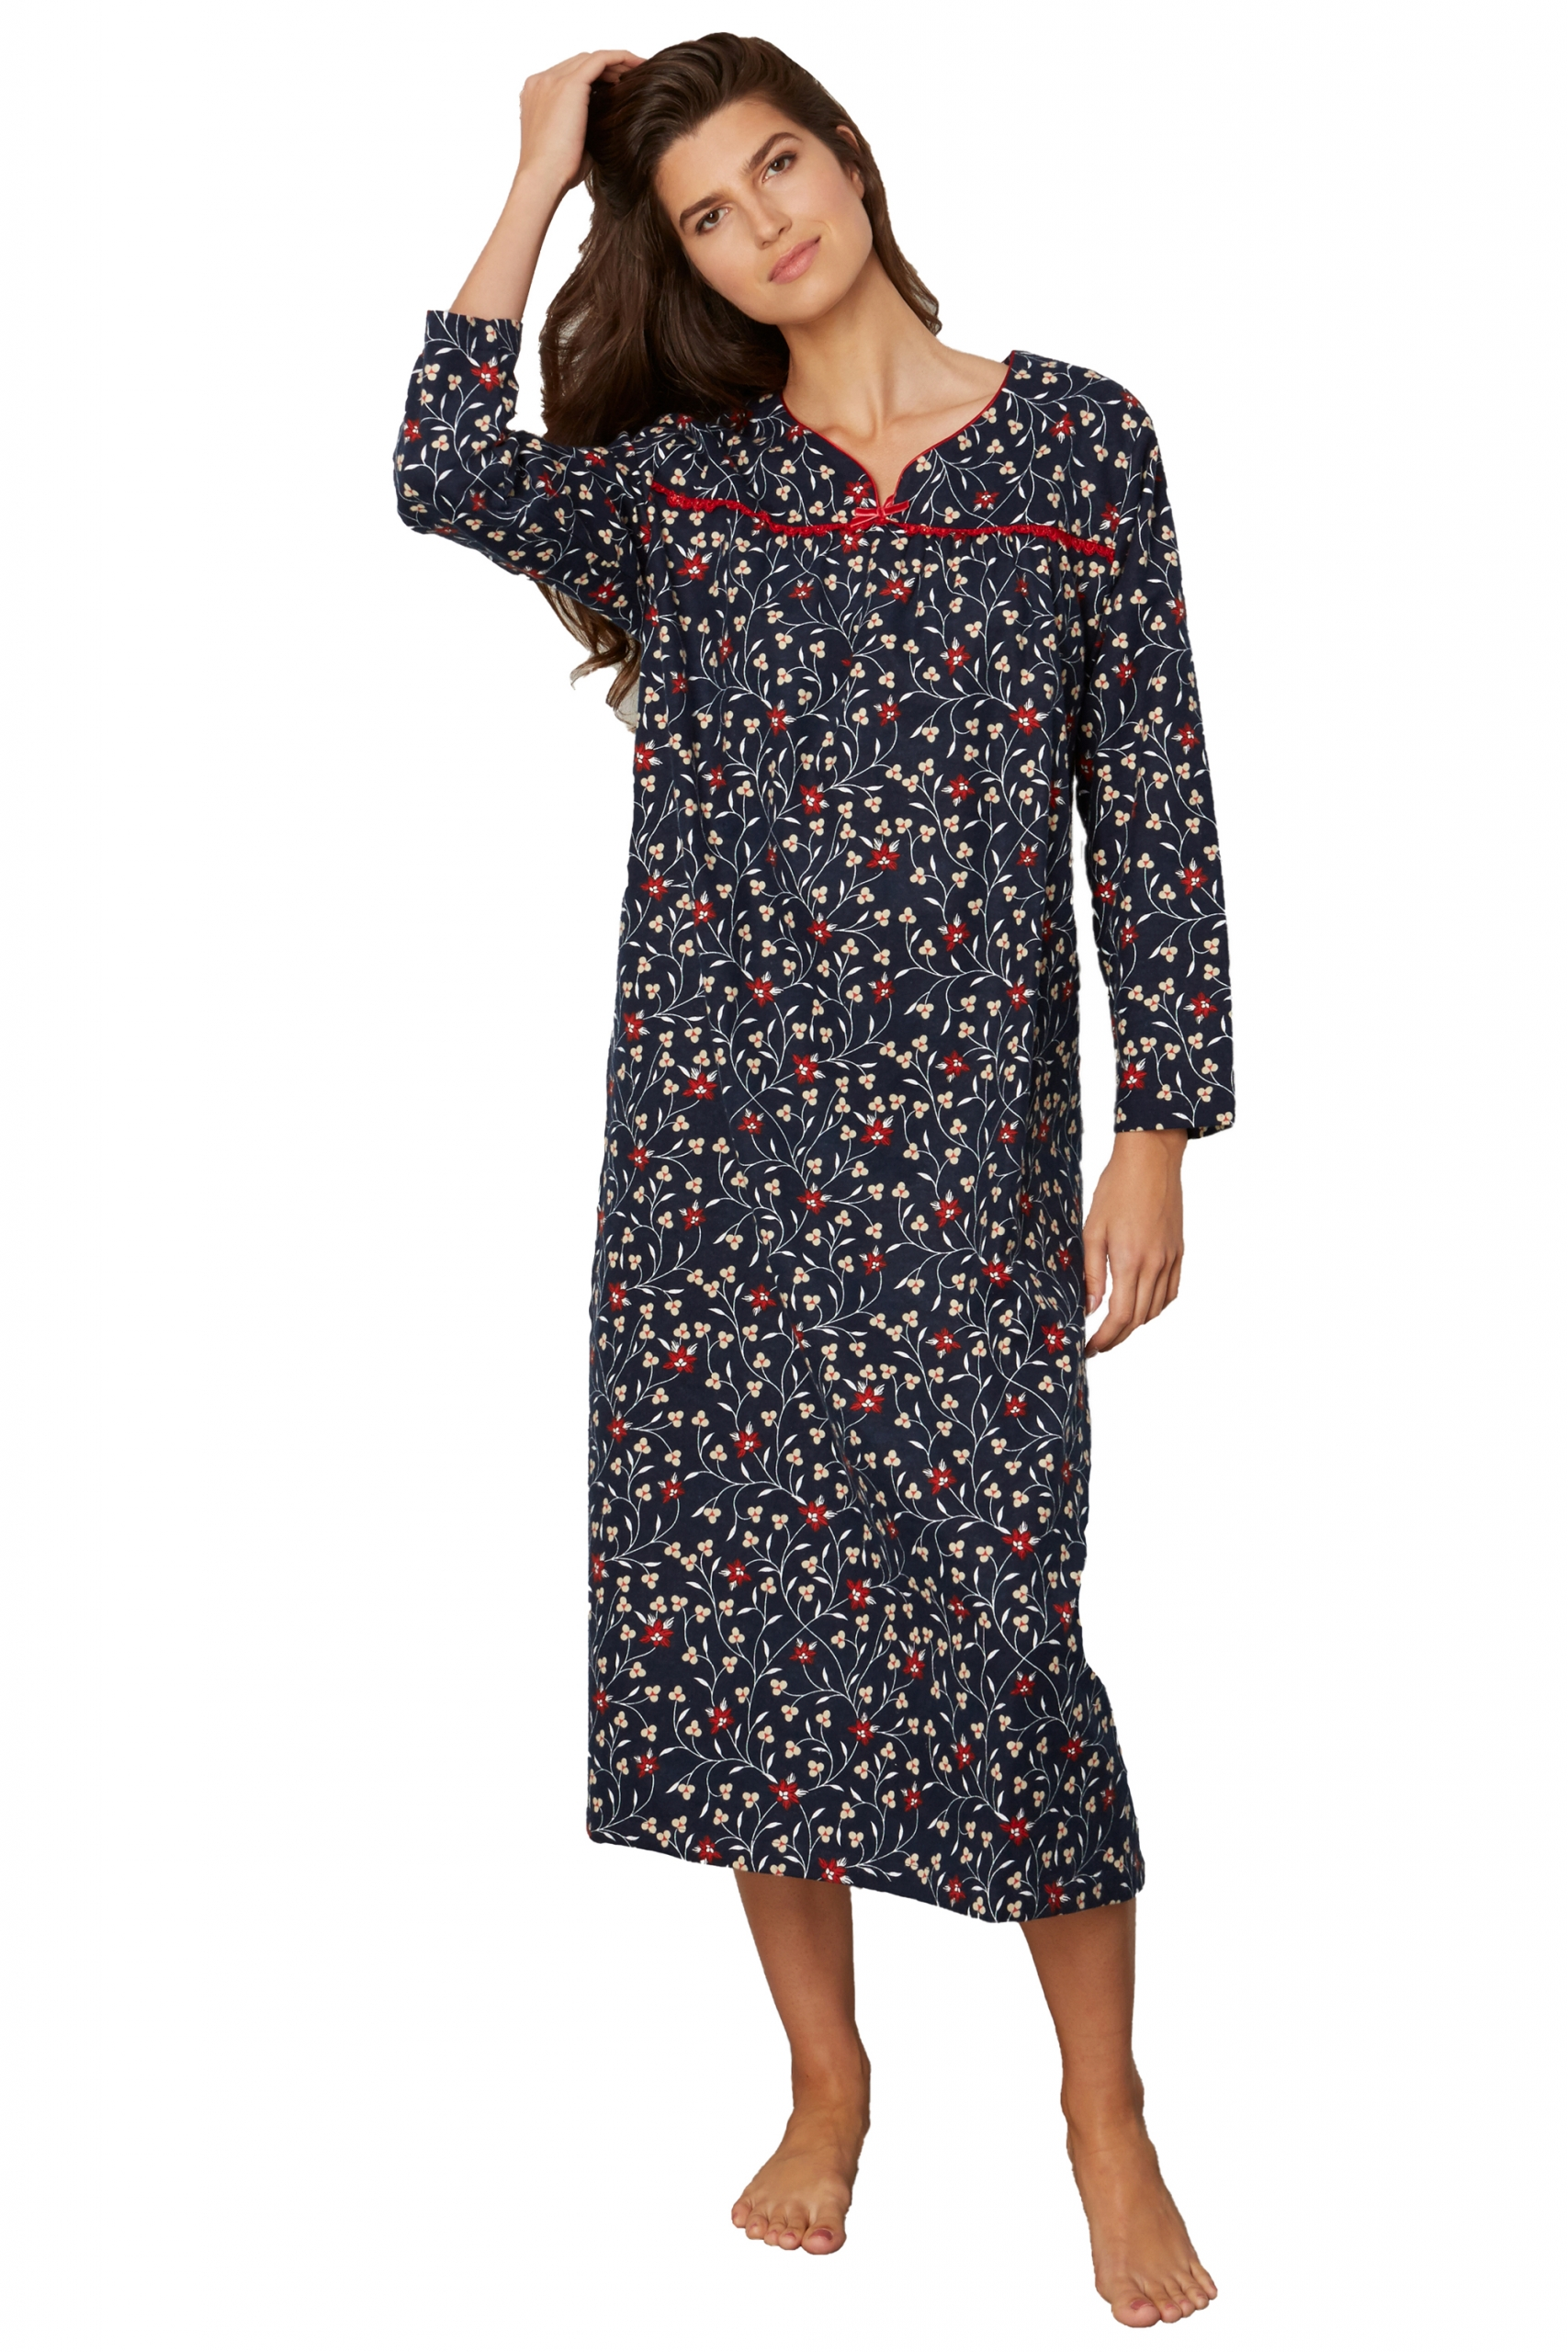 Kayanna Flannel Nightgown